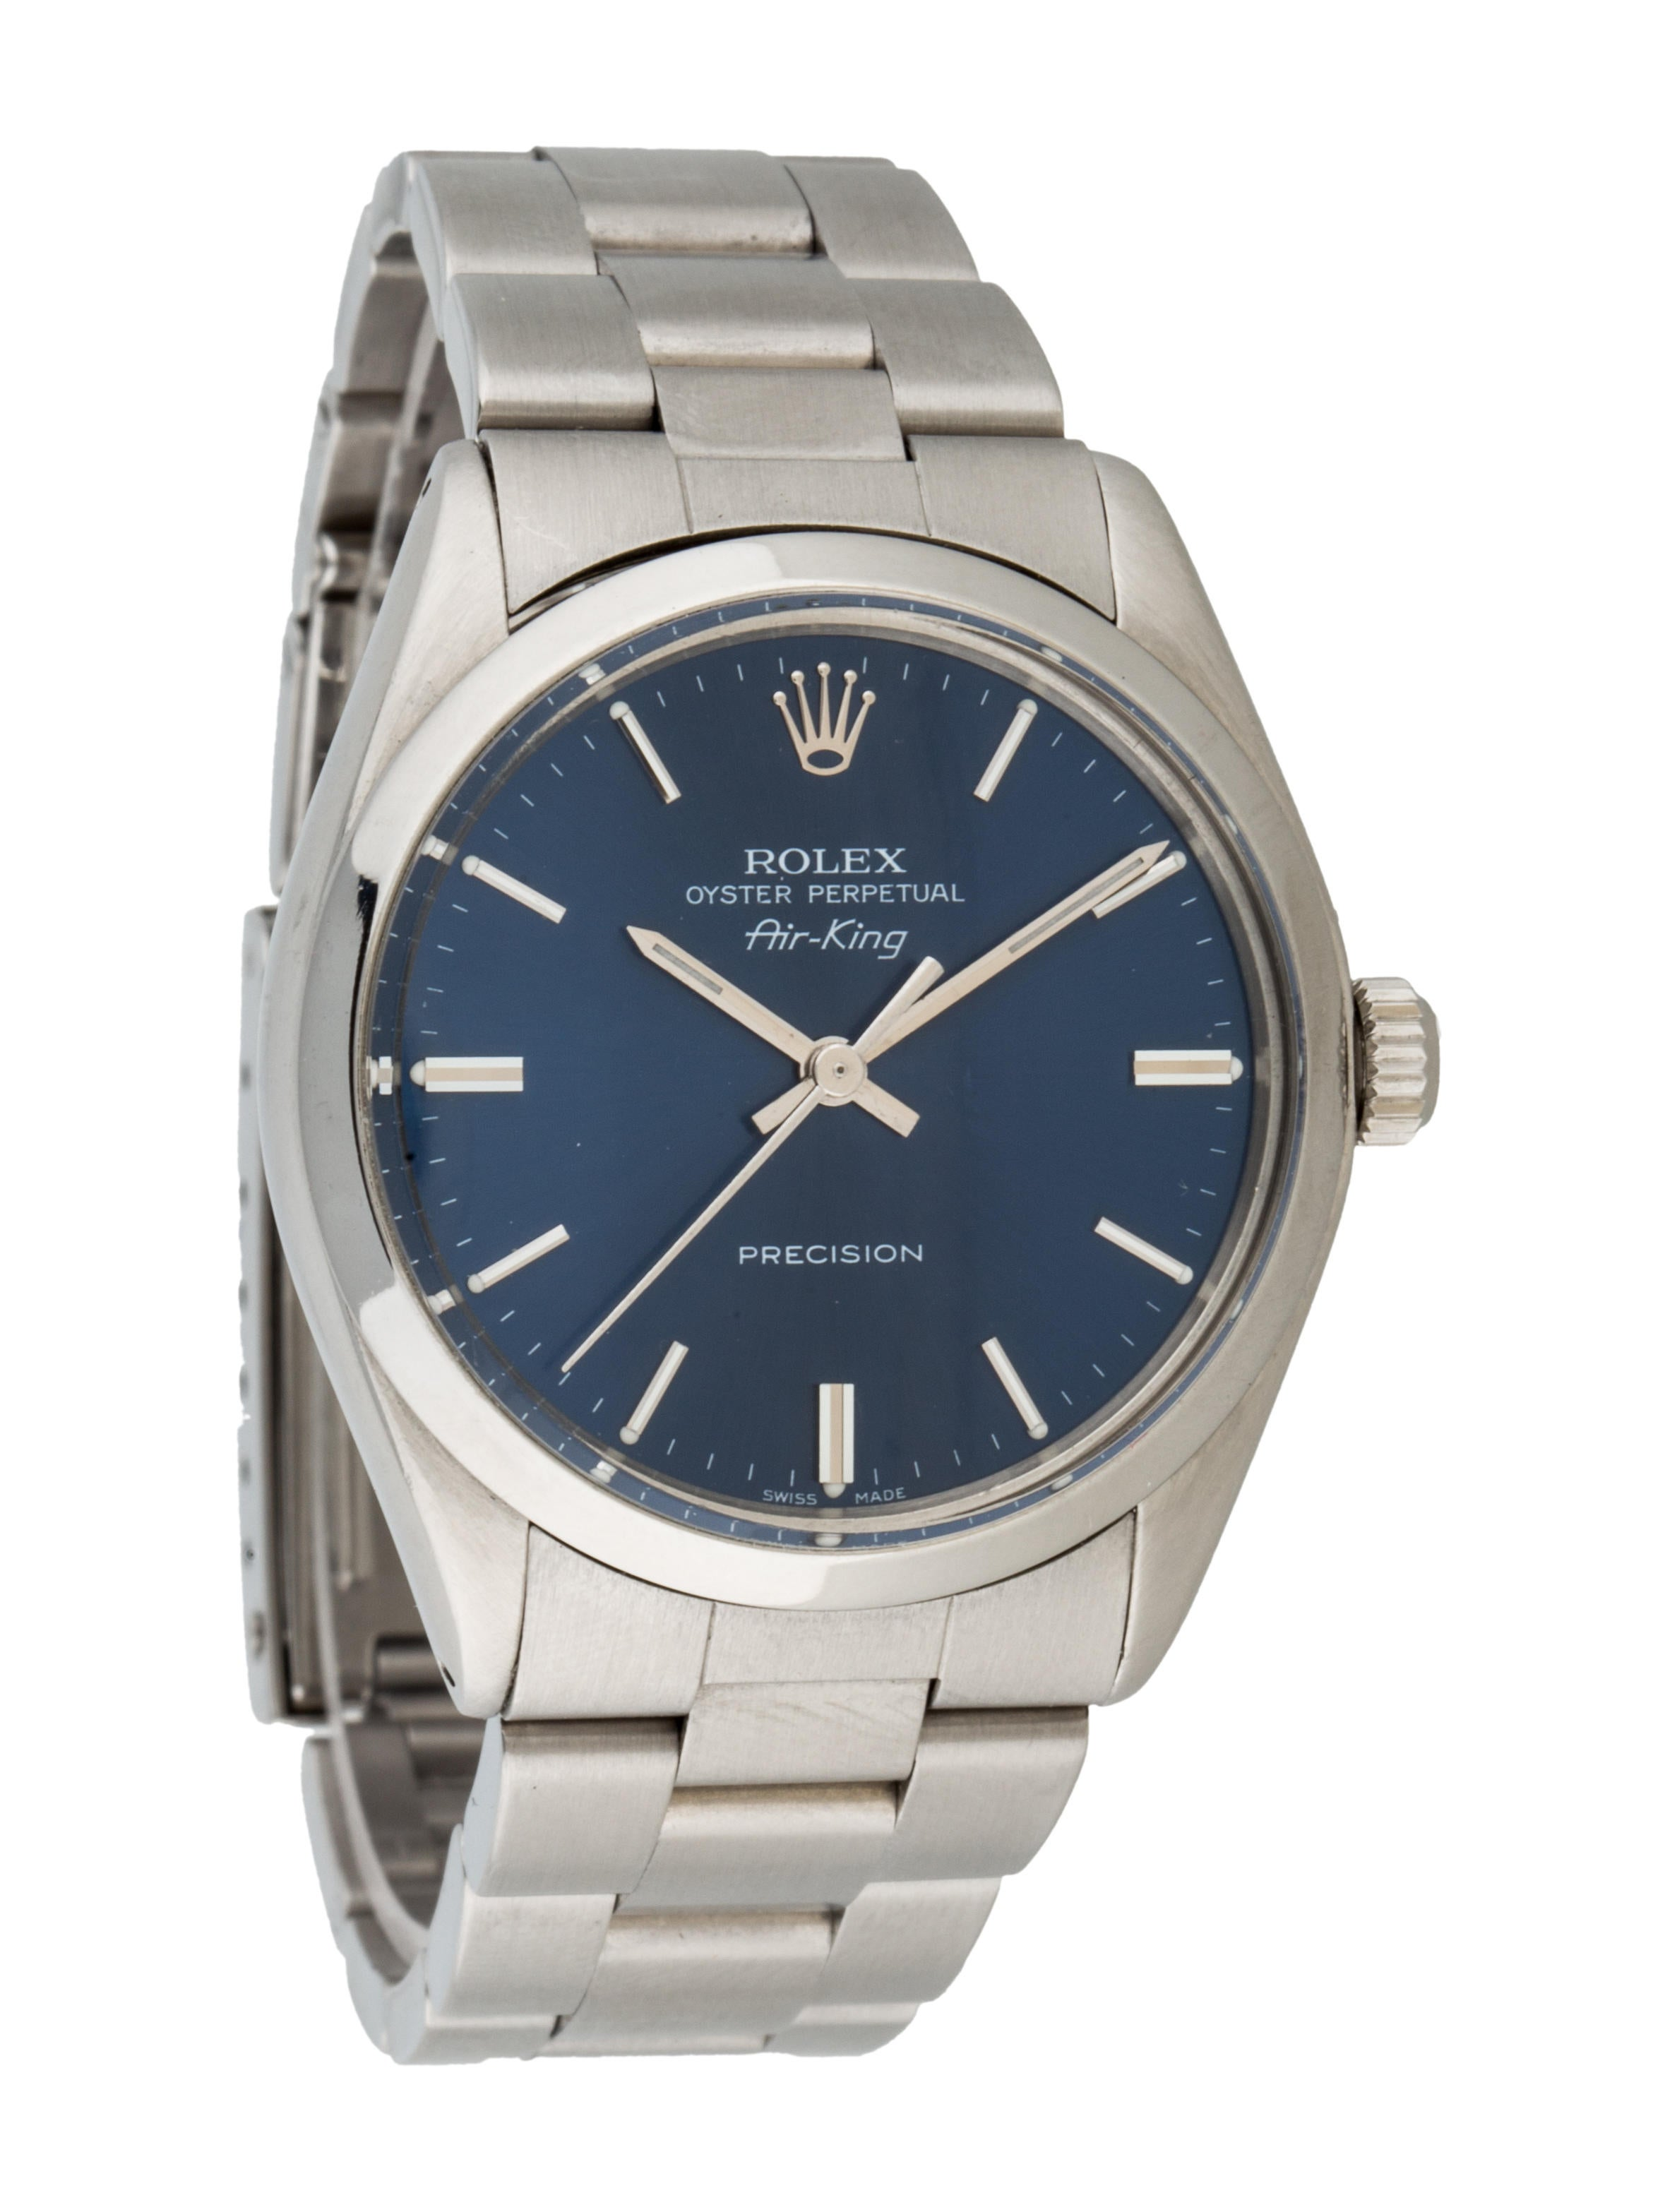 Rolex oyster perpetual air king watch bracelet rlx21385 the realreal for Oyster watches